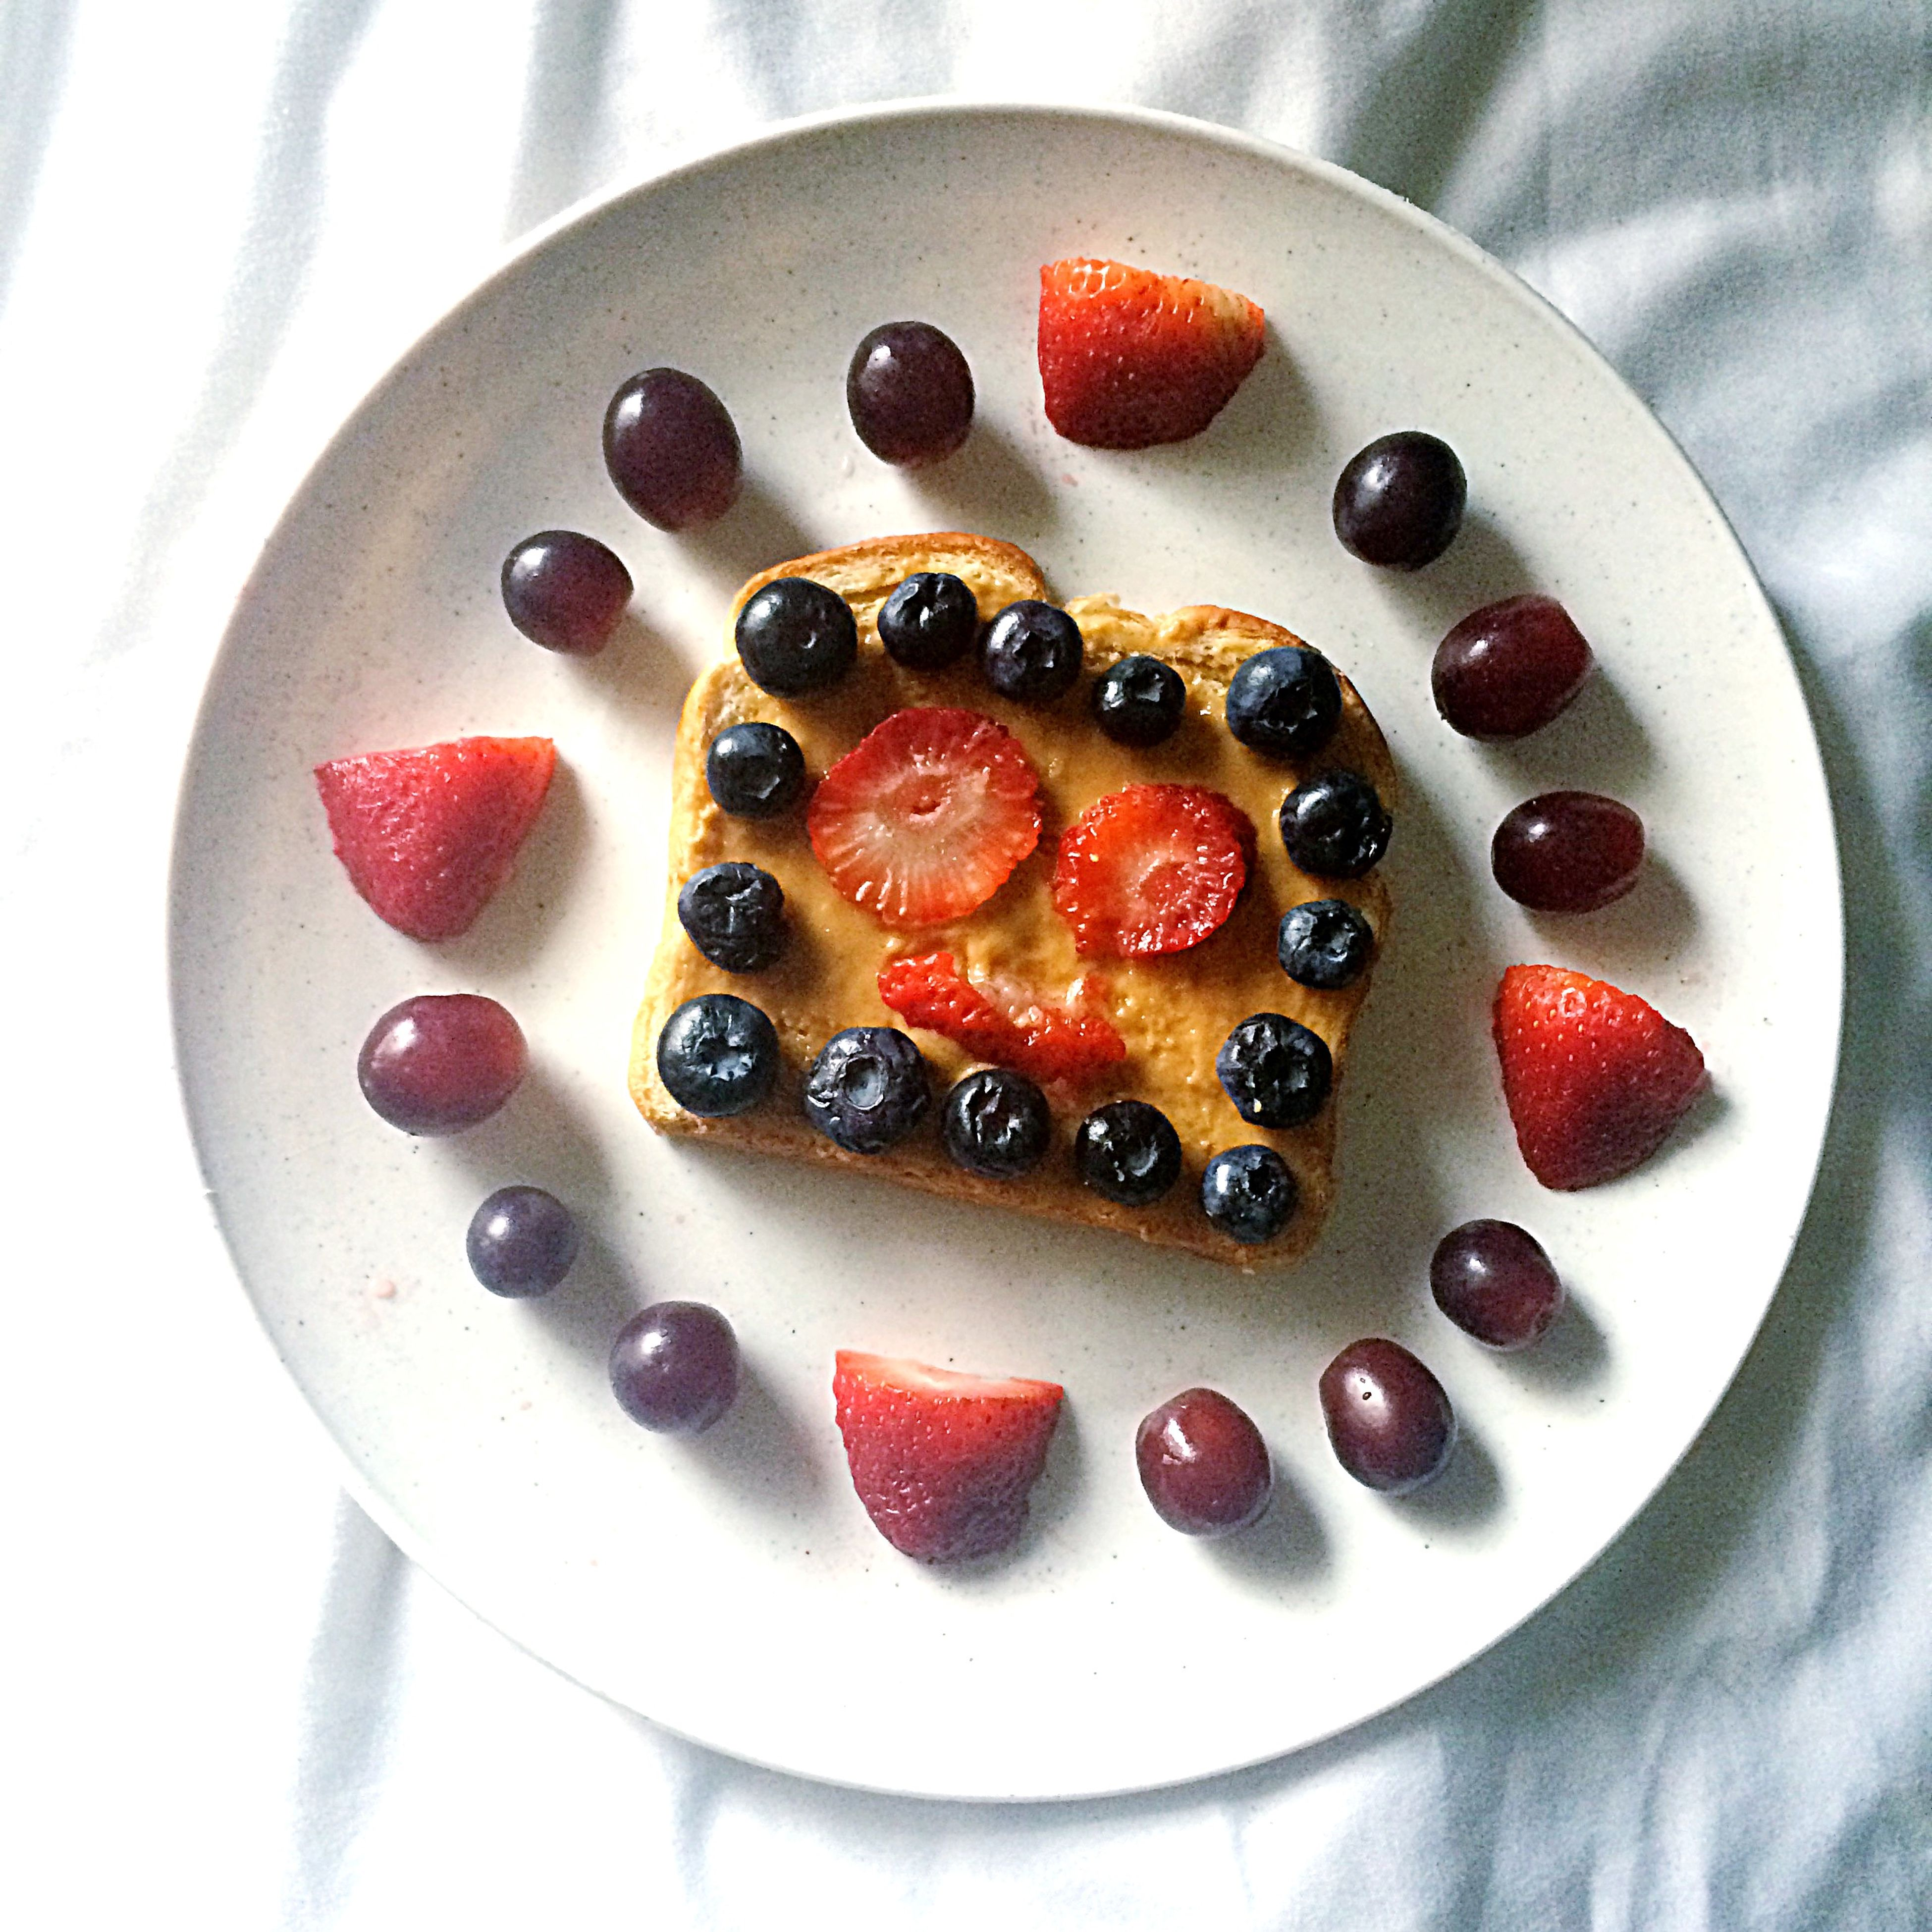 food and drink, food, freshness, indoors, sweet food, ready-to-eat, dessert, indulgence, plate, strawberry, fruit, still life, raspberry, temptation, unhealthy eating, cake, red, blueberry, close-up